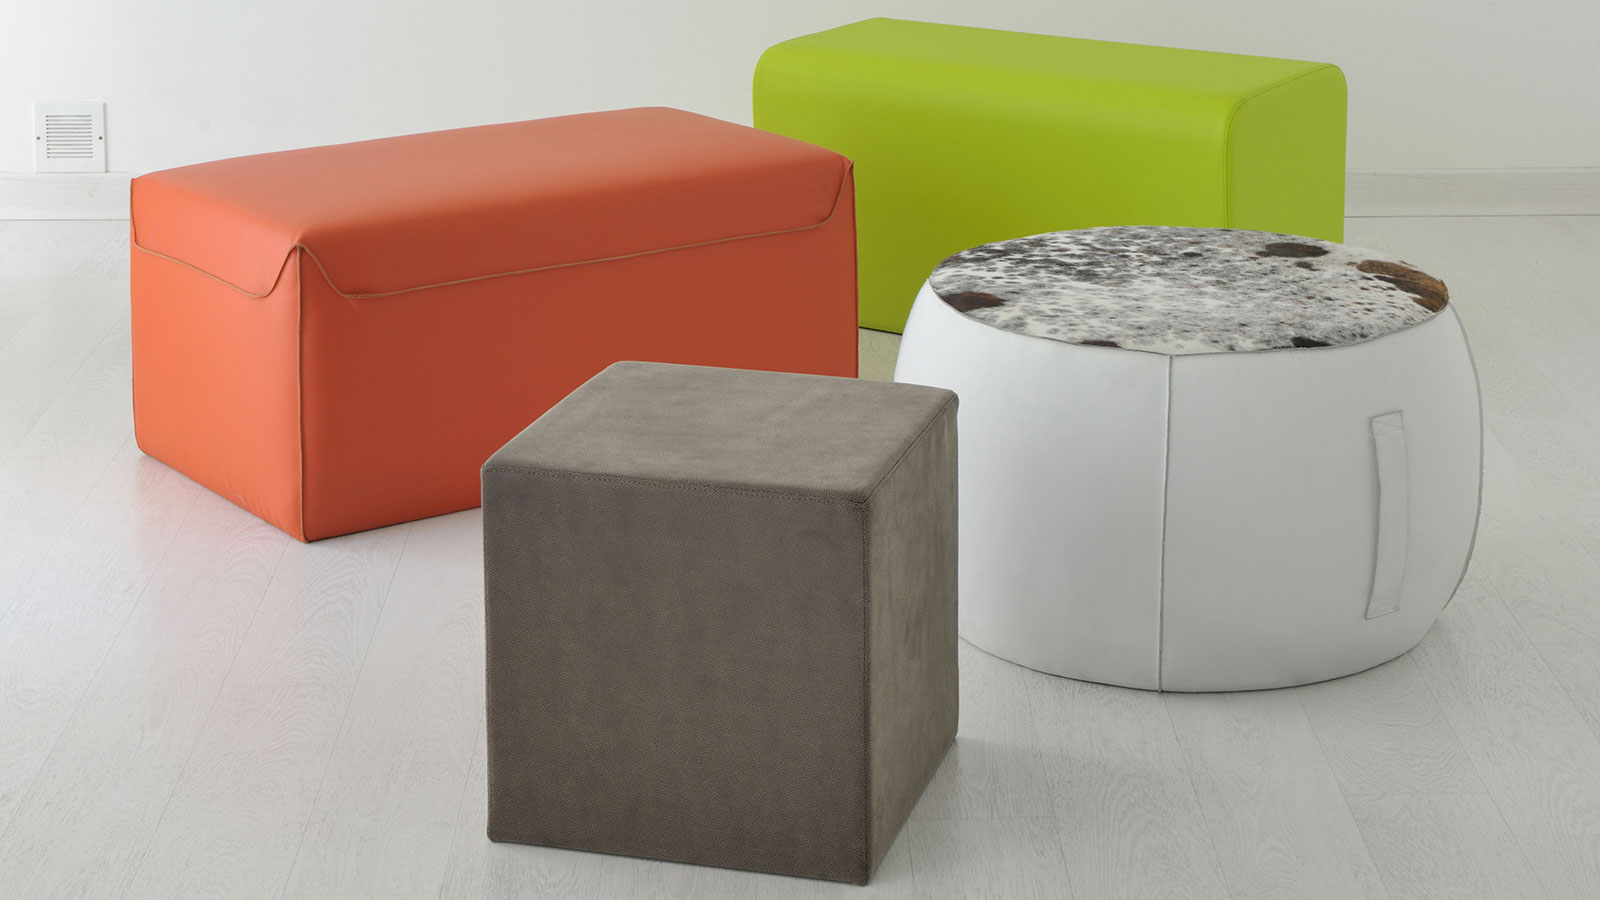 Gentil Furniture Complement For Additional Accommodation. Available In Several  Sizes, Colours And Coverings Of Leather